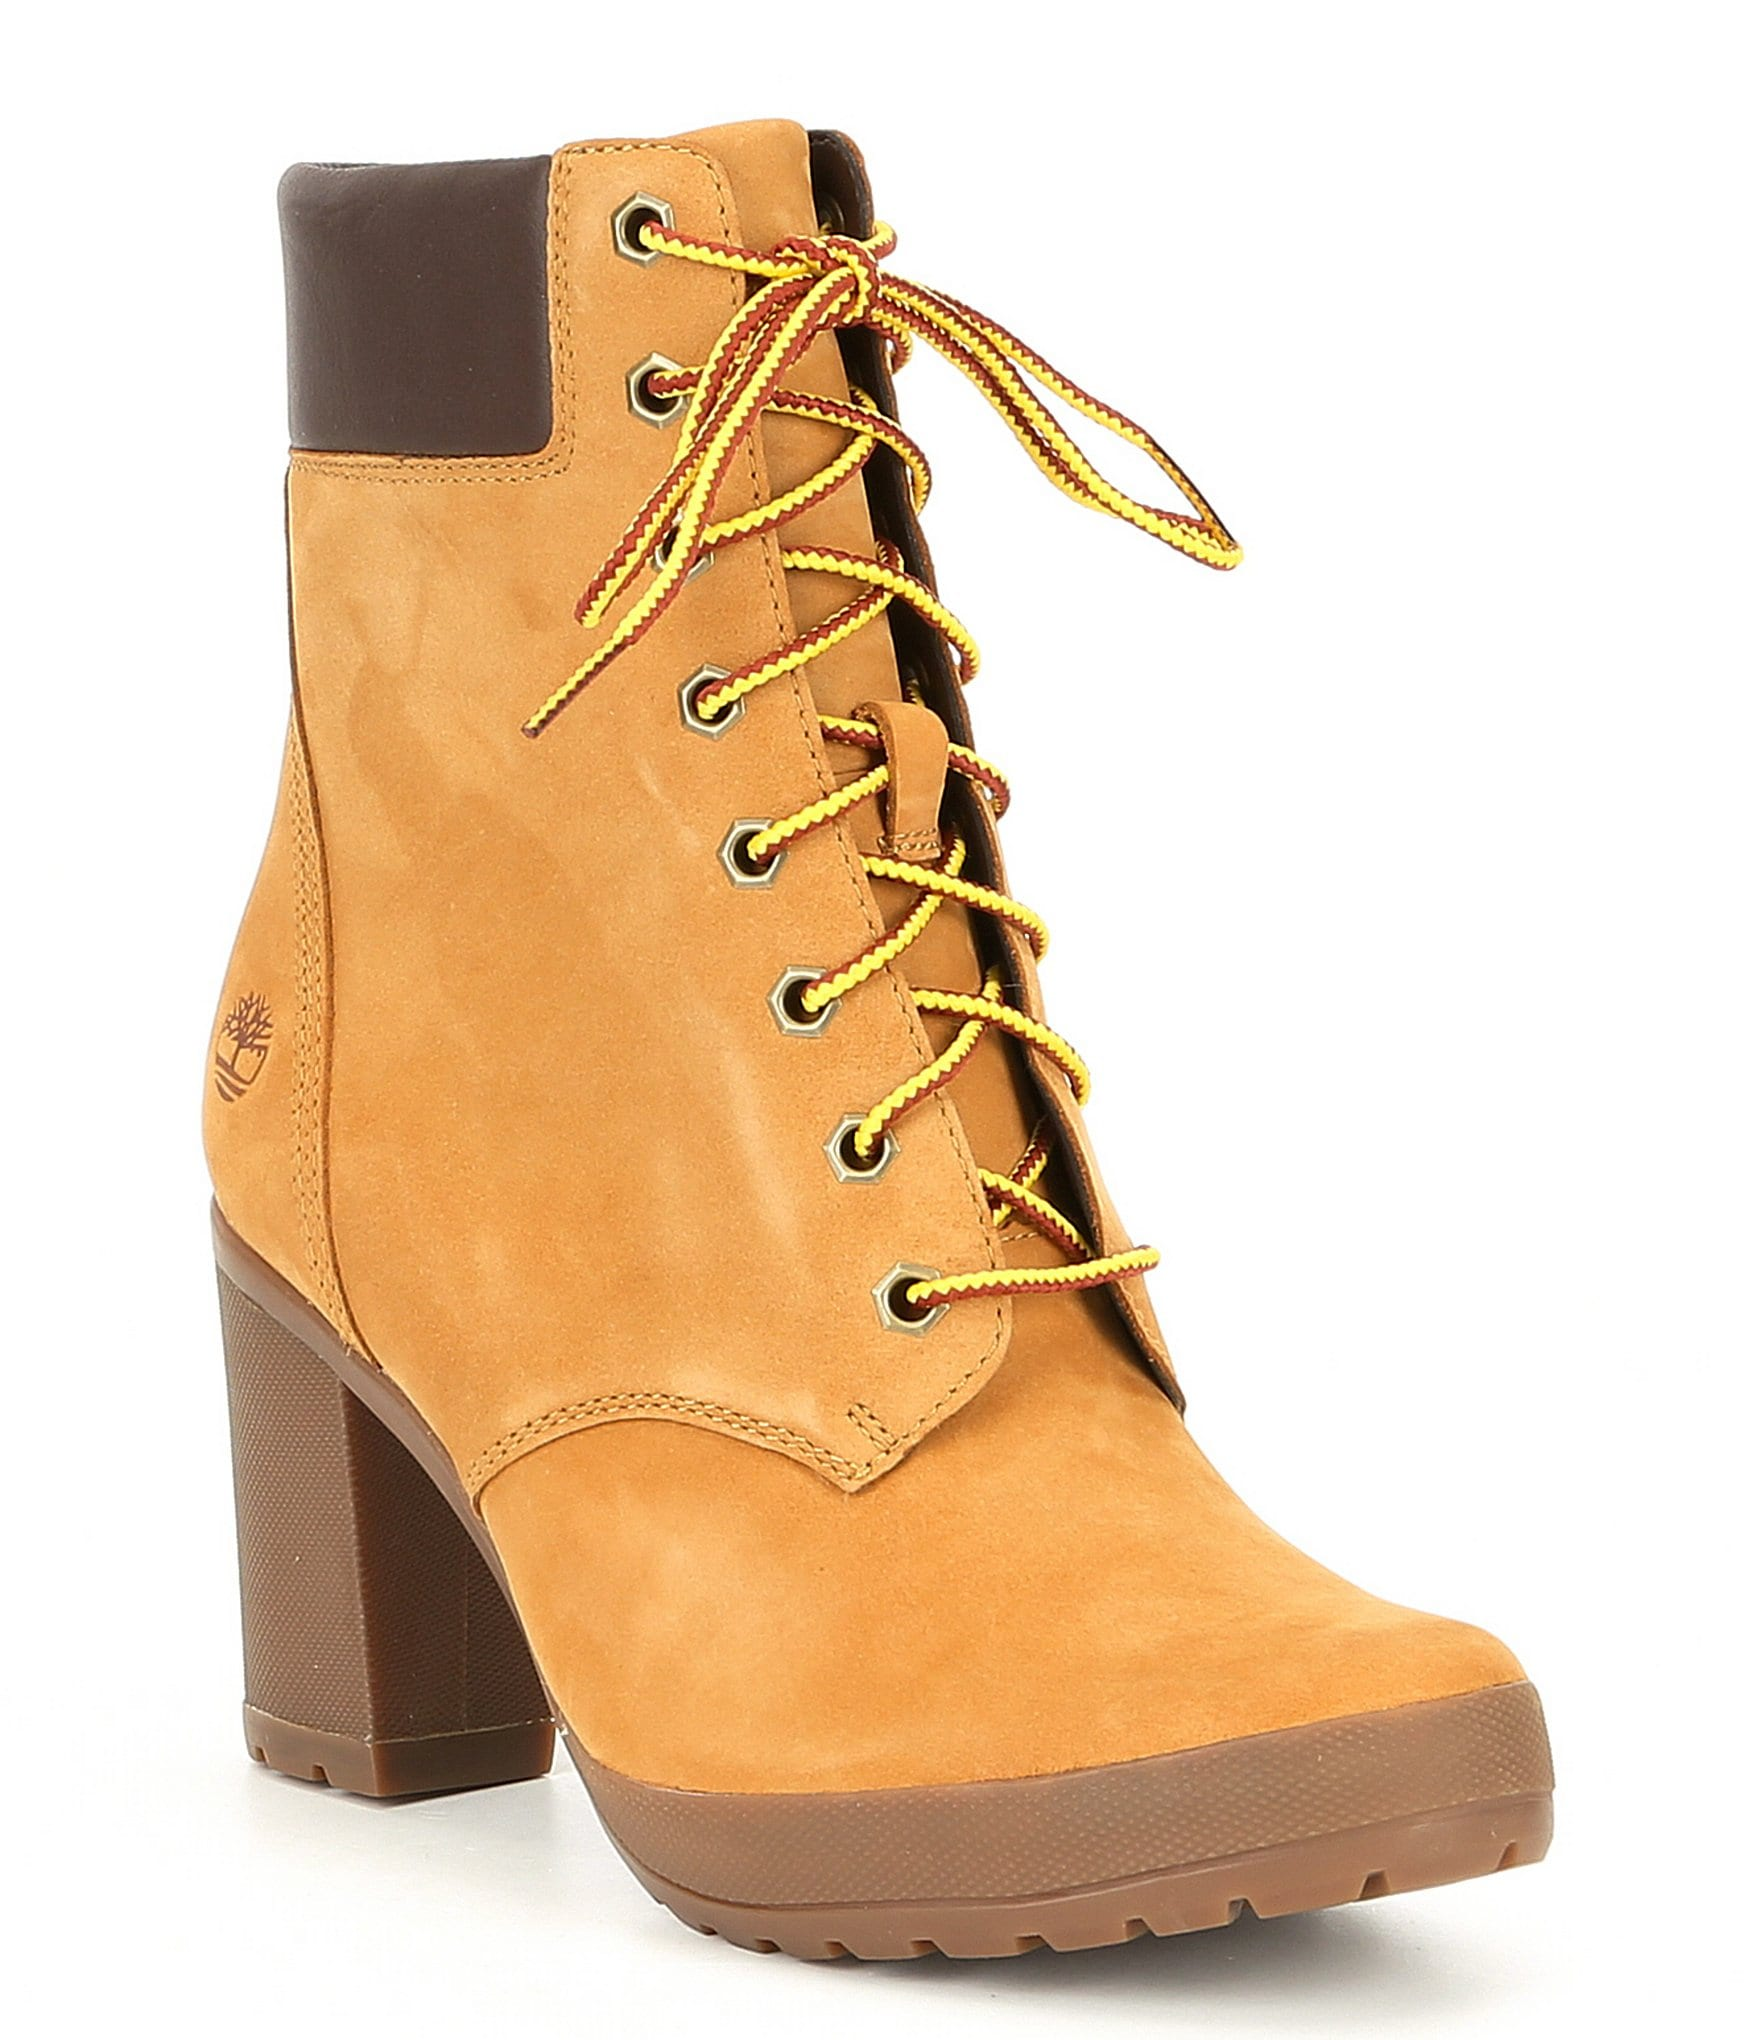 Timberland Camdale Leather Block Heel Field Hiker Boots | Dillard's